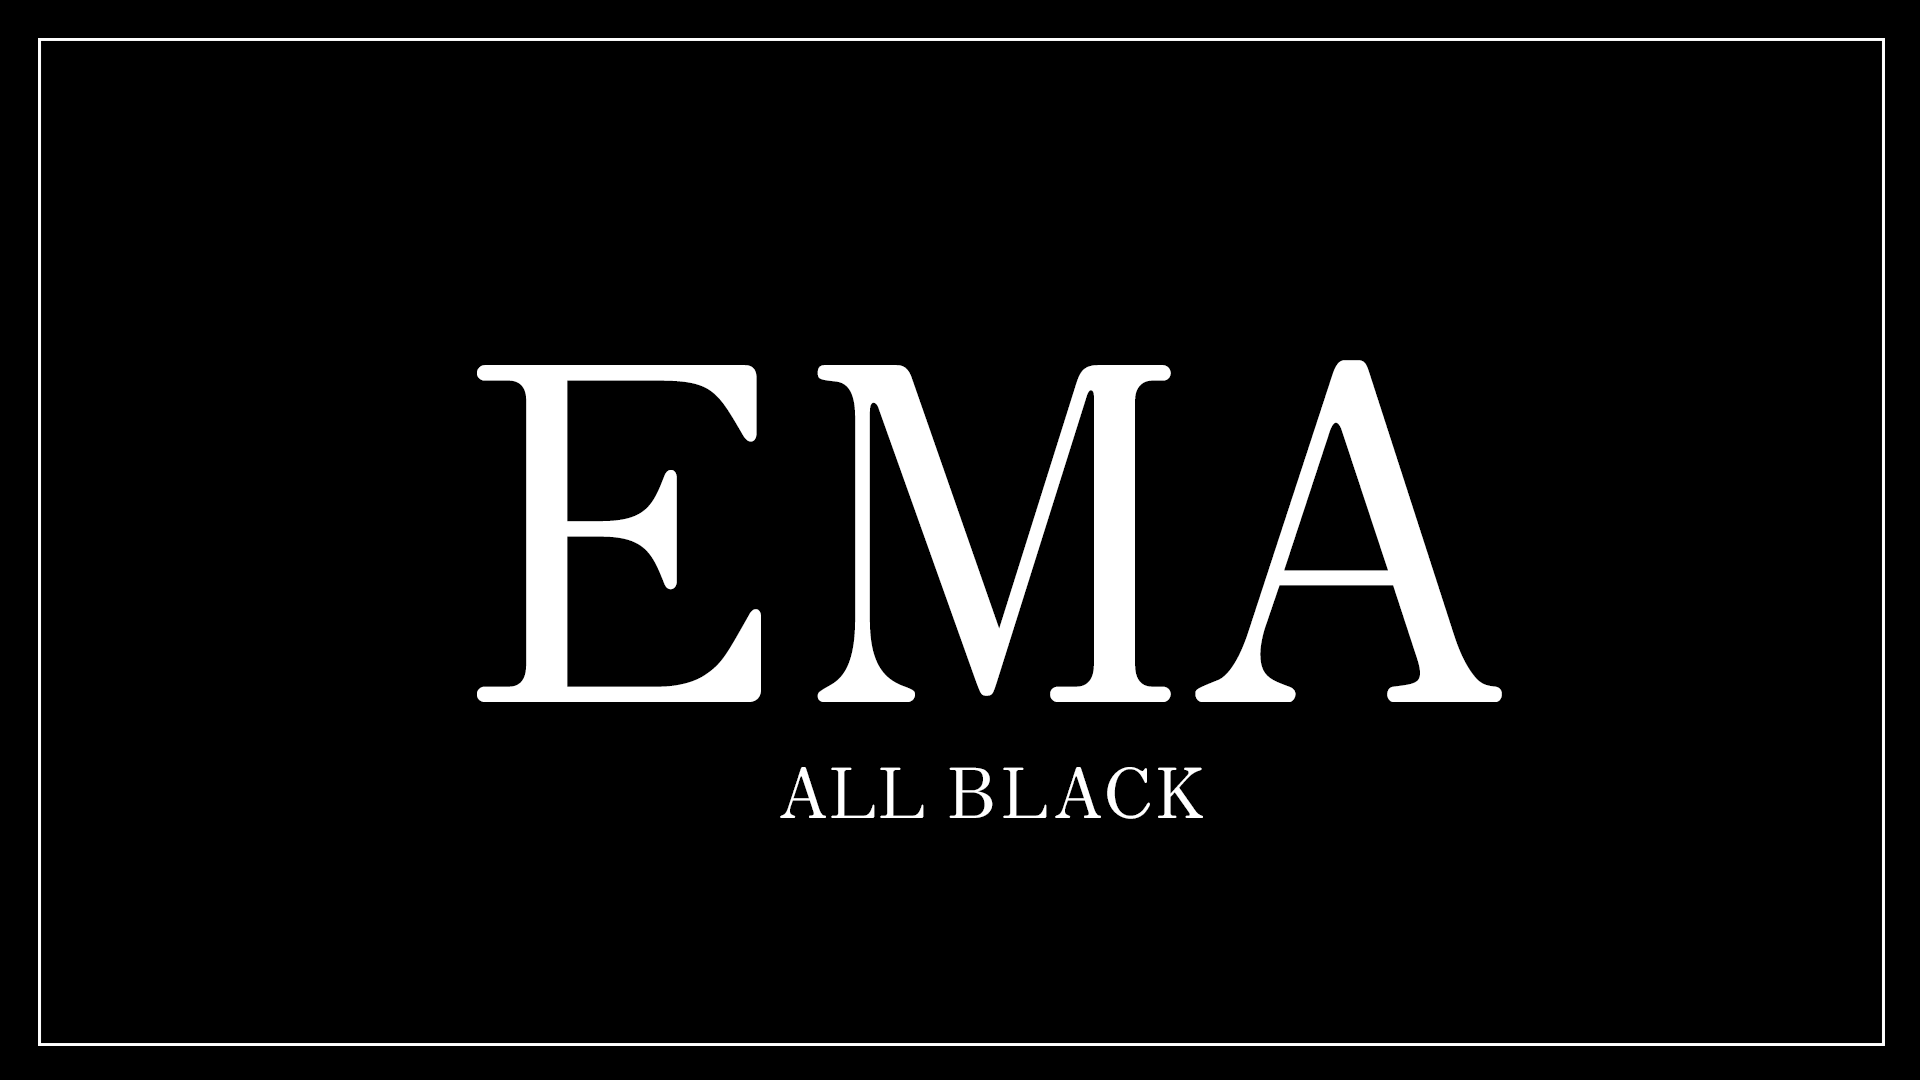 【AIR GROUP】ALL BLACK「EMA」に密着